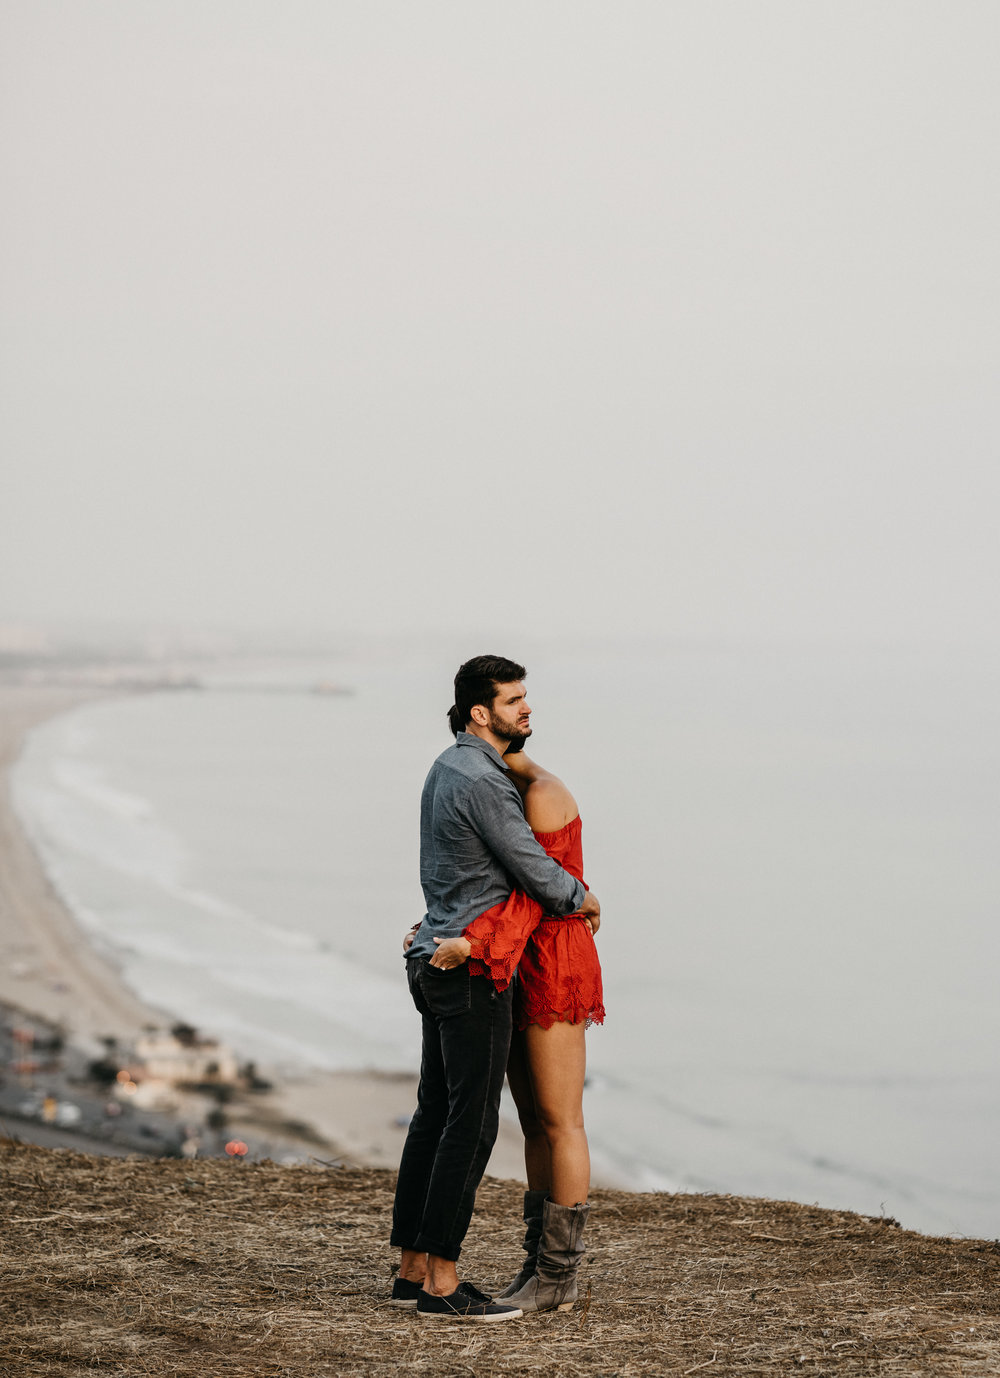 Isaiah + Taylor Photography - Santa Monica Engagement Session, Los Angeles Wedding Photographer-050.jpg